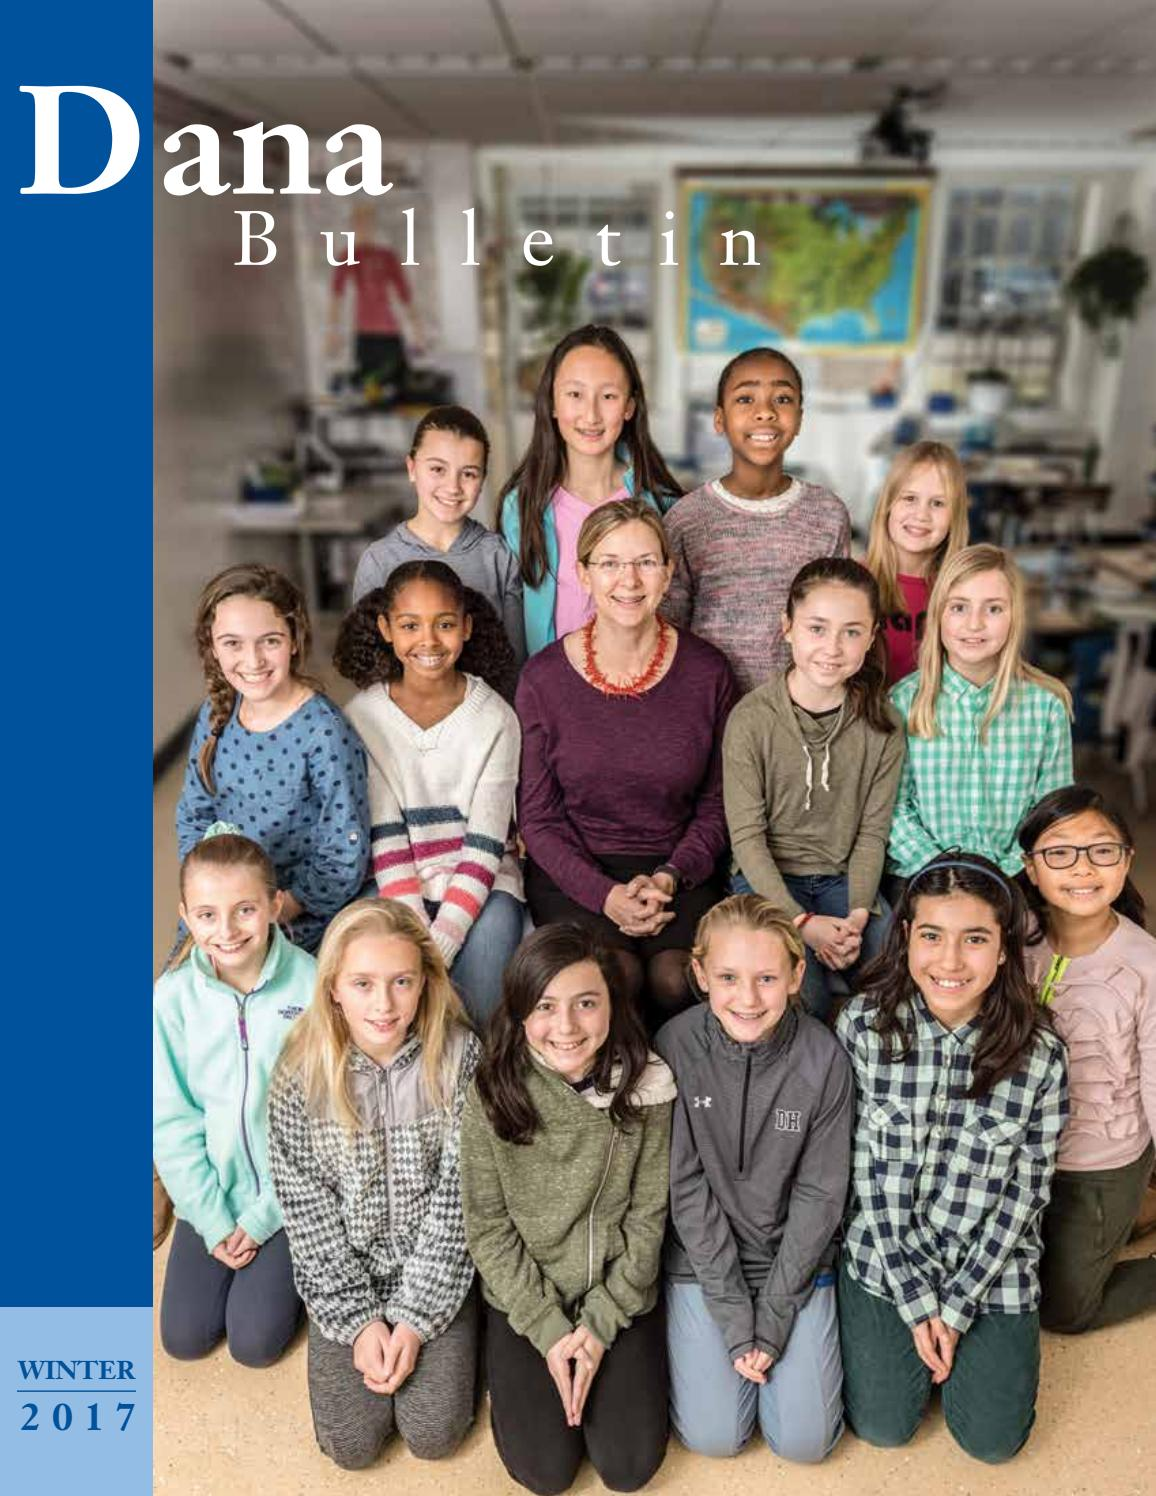 de8593c307b6 Dana Hall Winter 2017 Bulletin by Liza Cohen - issuu